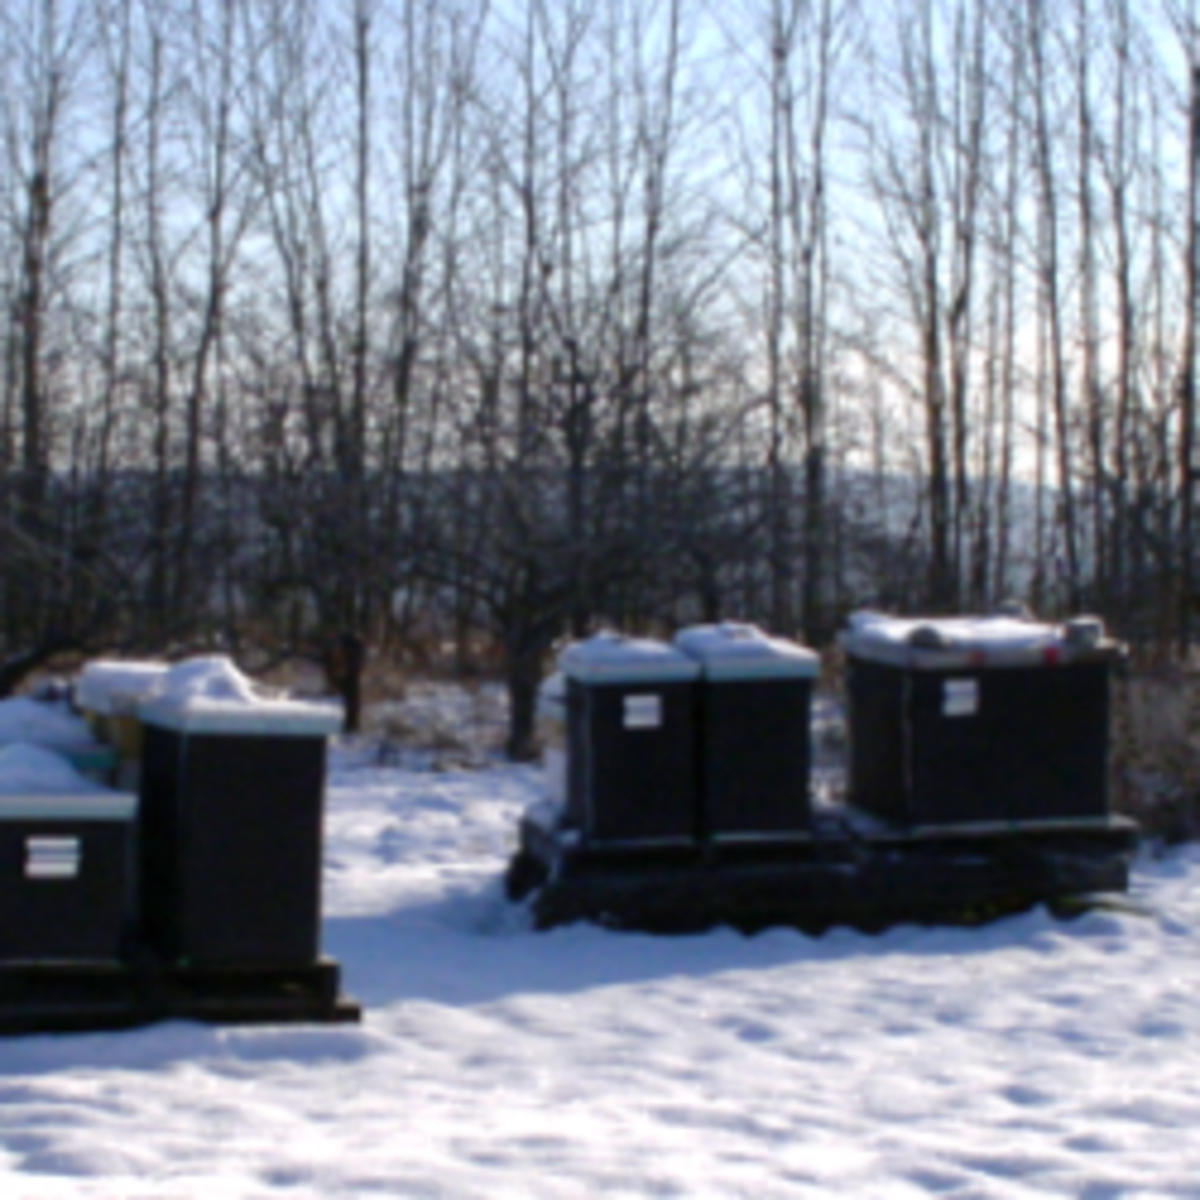 Part of my home apiary in early spring, with bee hives still in winter wraps.